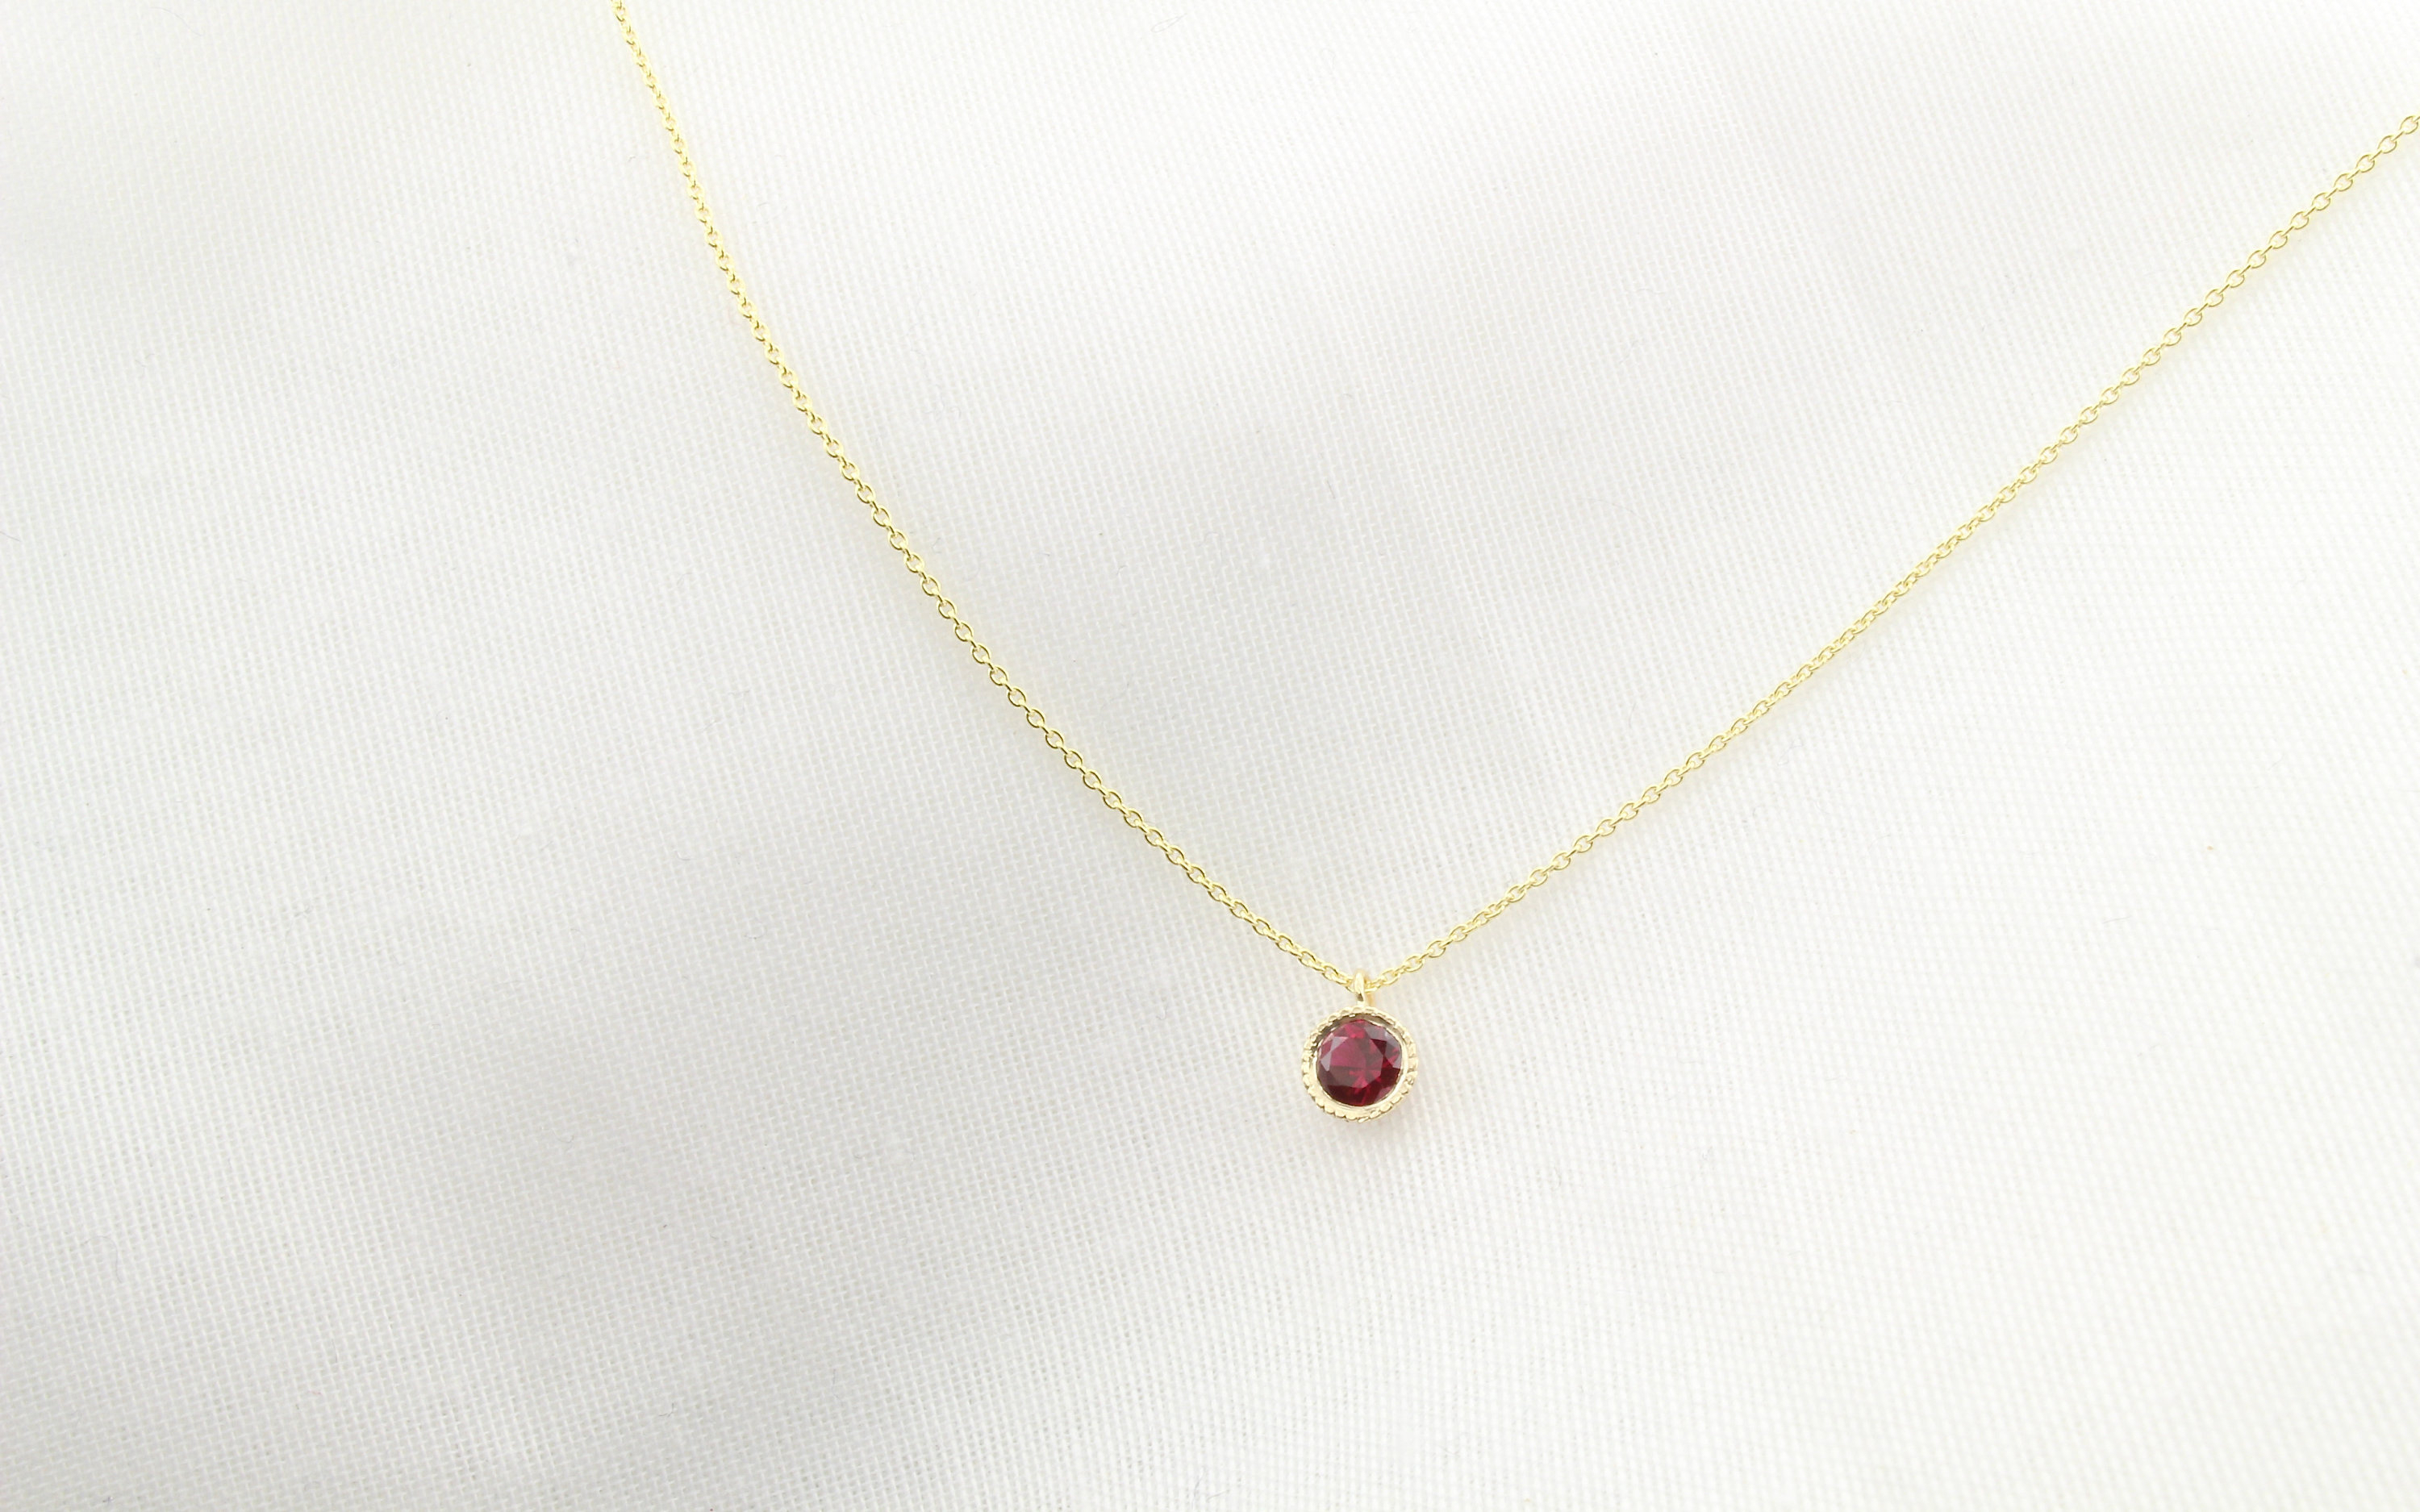 Delicate Ruby Gold Necklace, Solid Gold Necklace, 14K Dainty Droplet  Necklace, 14K Gold Necklace, Graduation Gift, Brookemicheledesigns Pertaining To Most Up To Date November Droplet Pendant Necklaces (View 7 of 25)